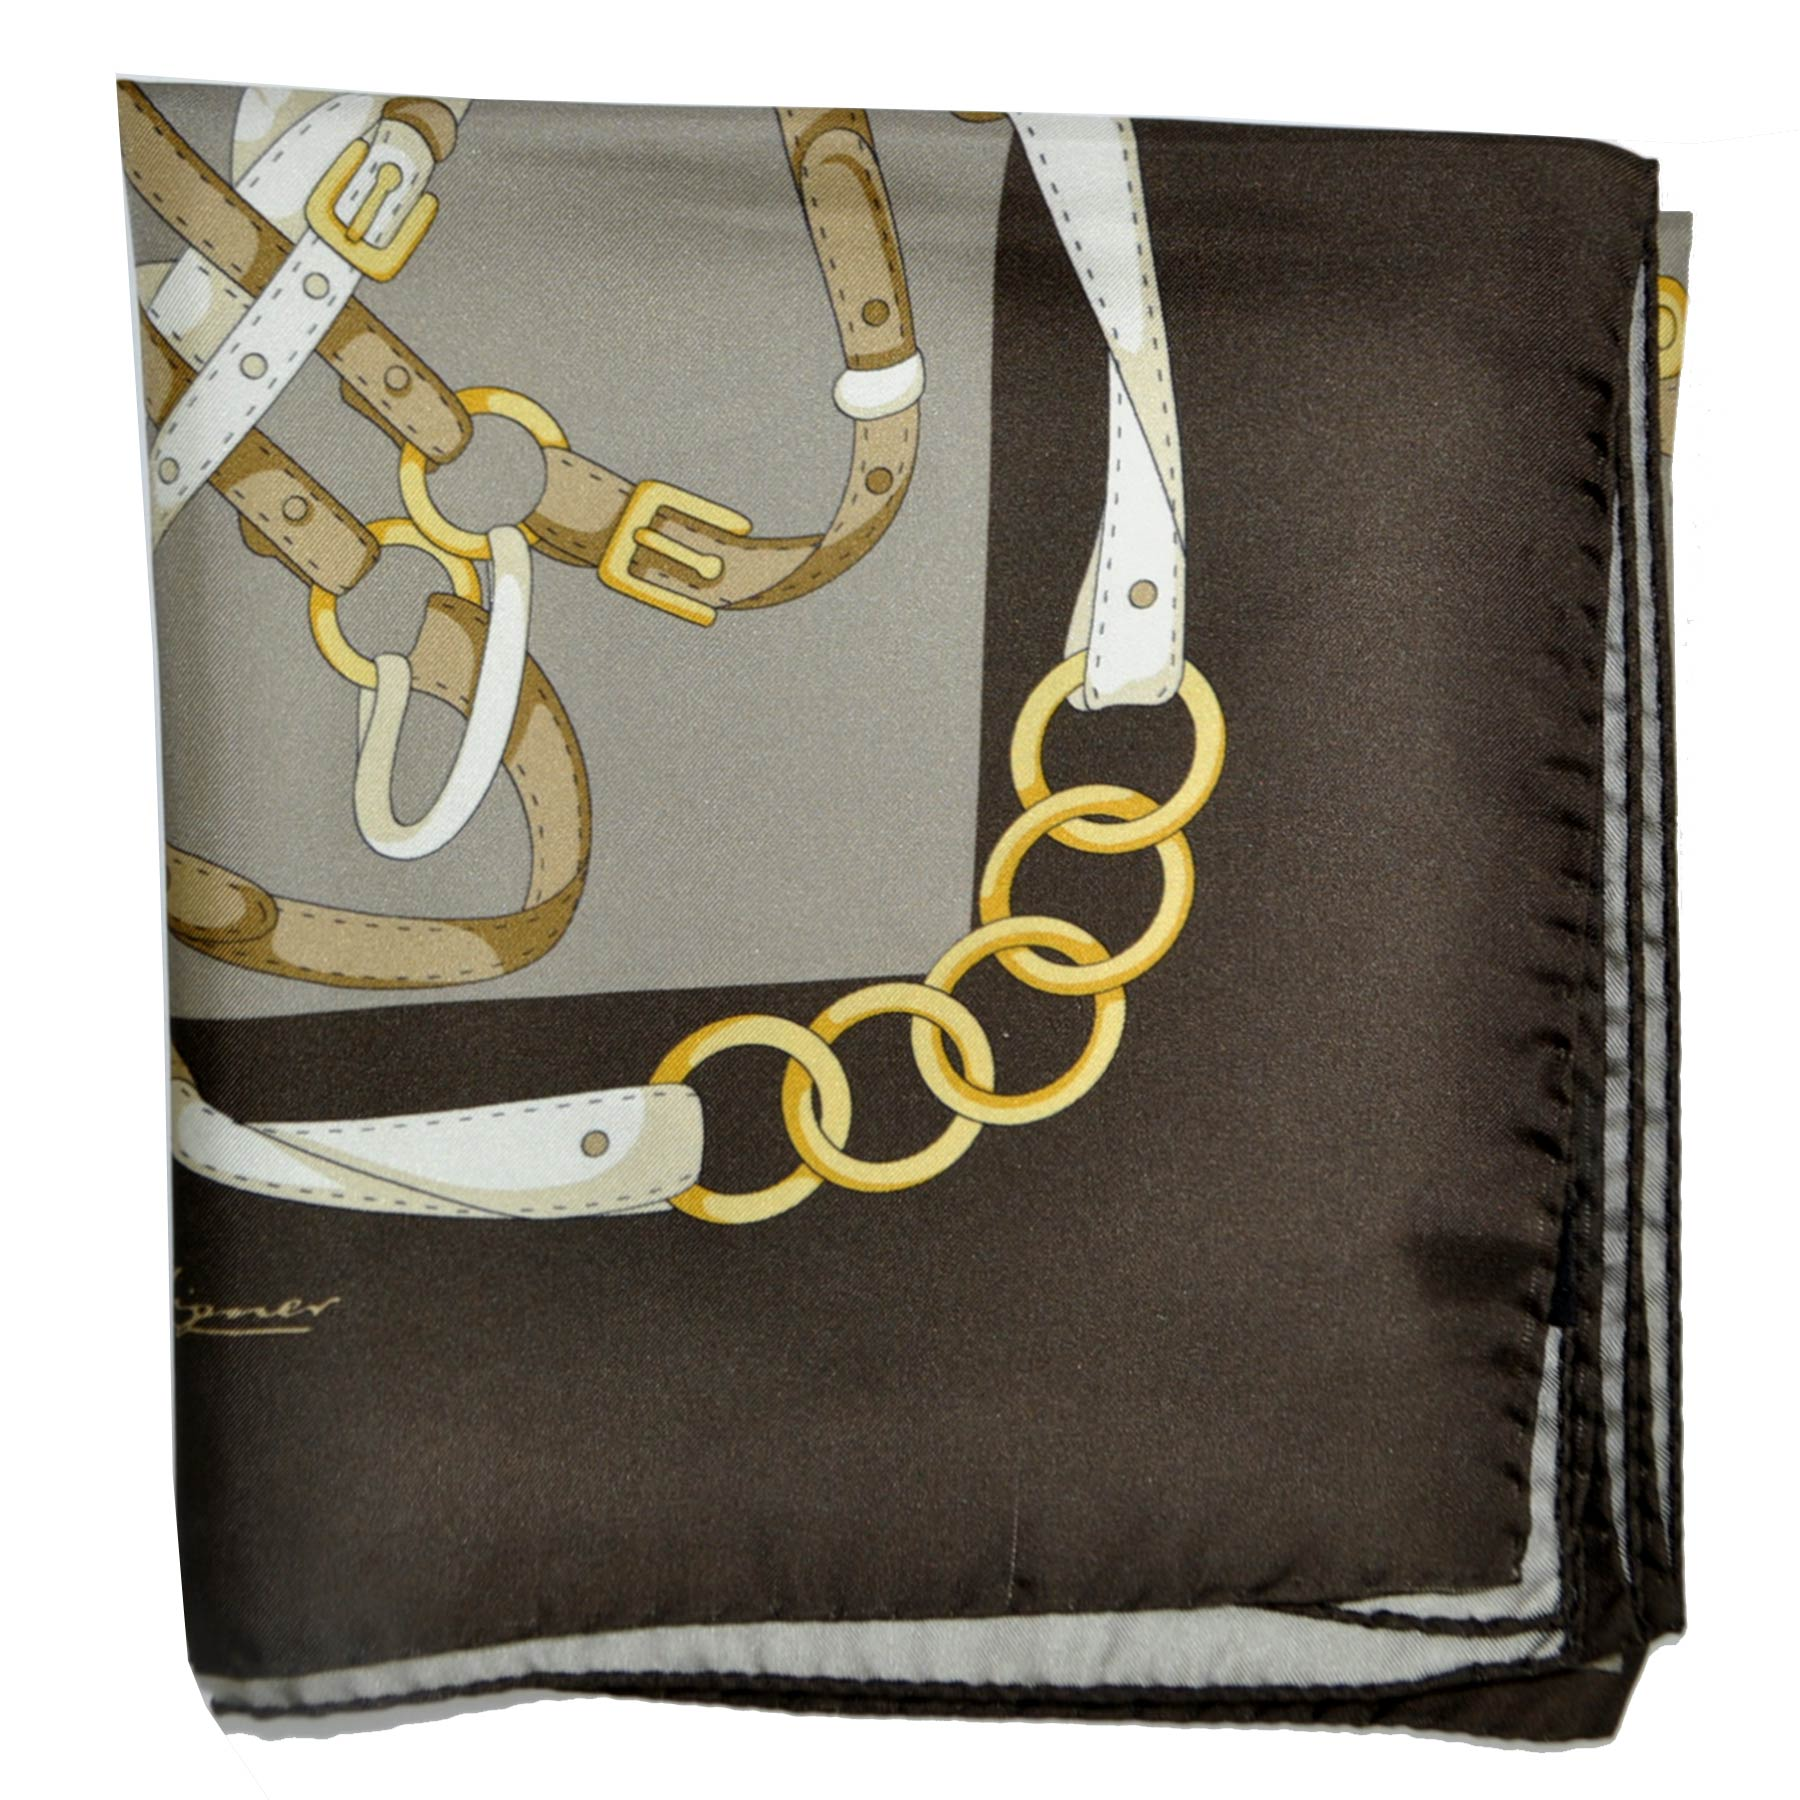 Aigner Scarf Brown Gold Cream Design Twill Silk Square Scarf